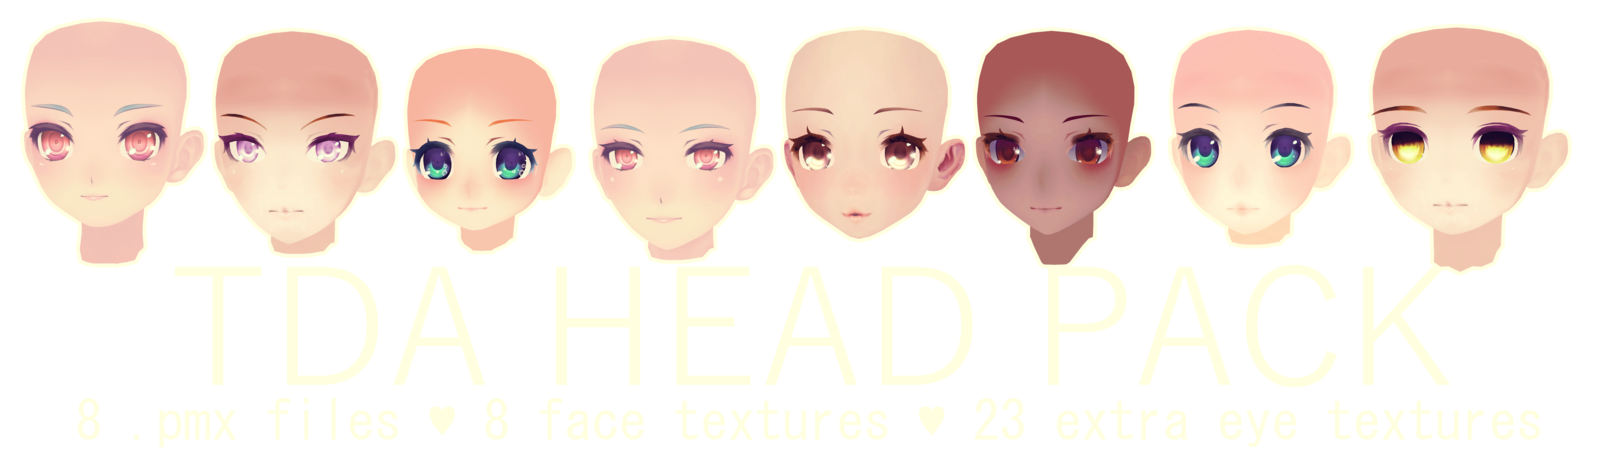 TDA HEAD PACK DL by kreifish deviantart com on @DeviantArt